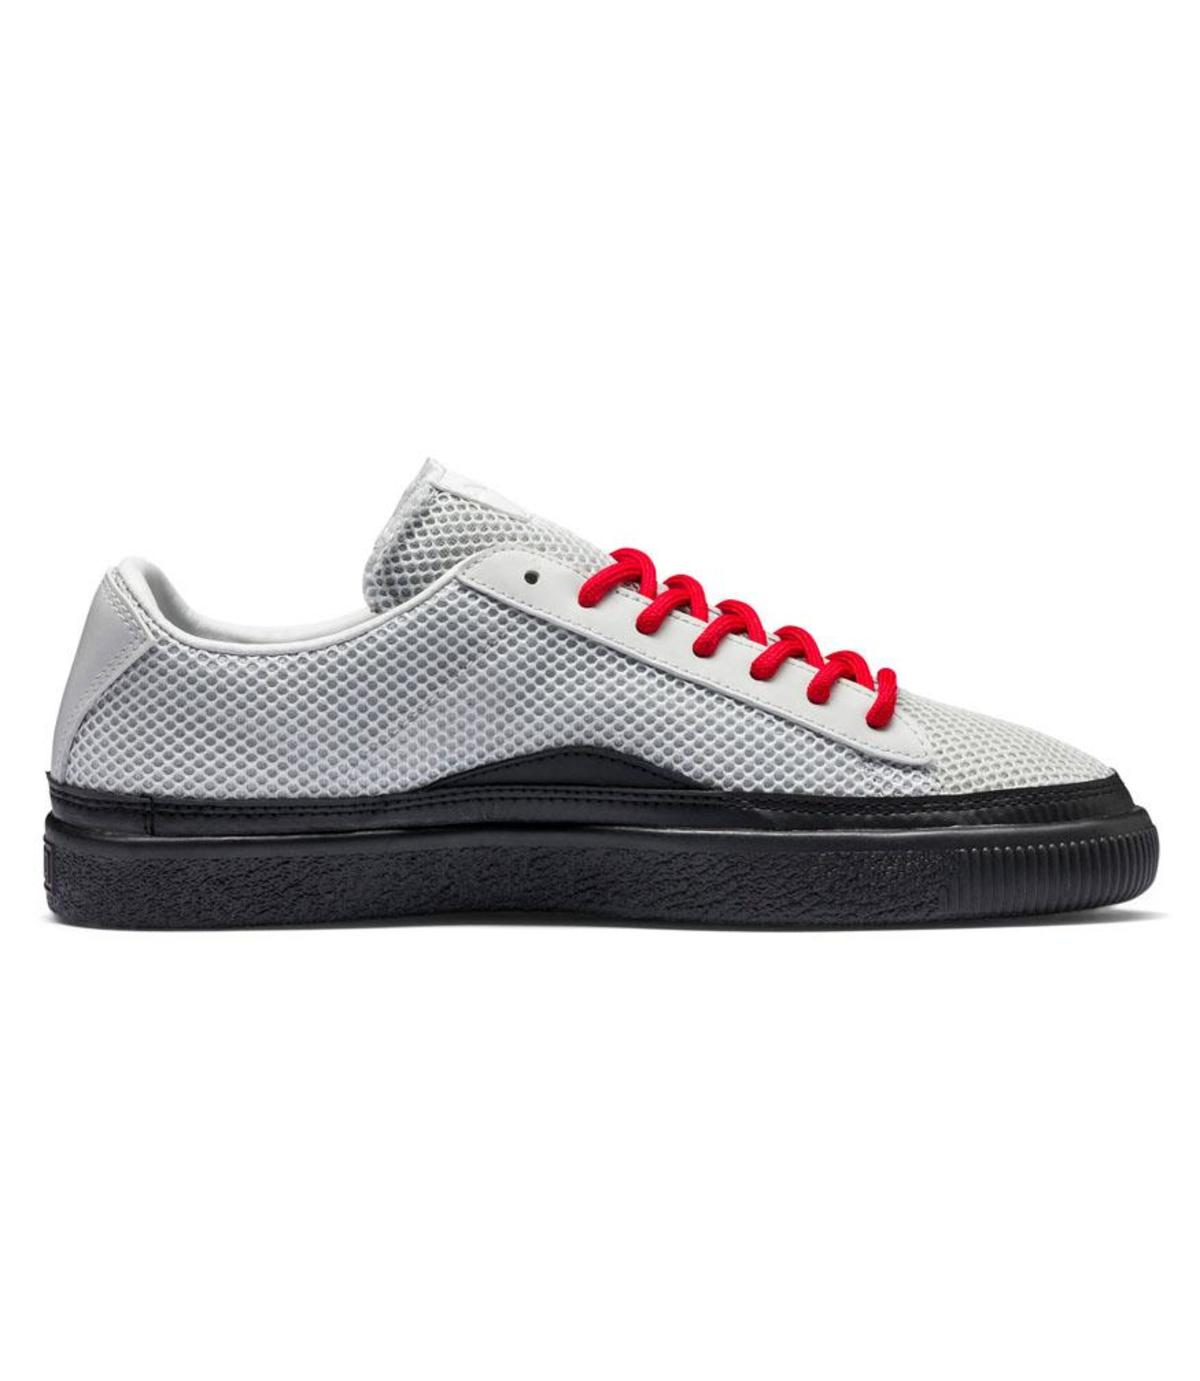 detailed pictures 878bd 32bdc Puma Clyde Han Low Sneaker - Gray